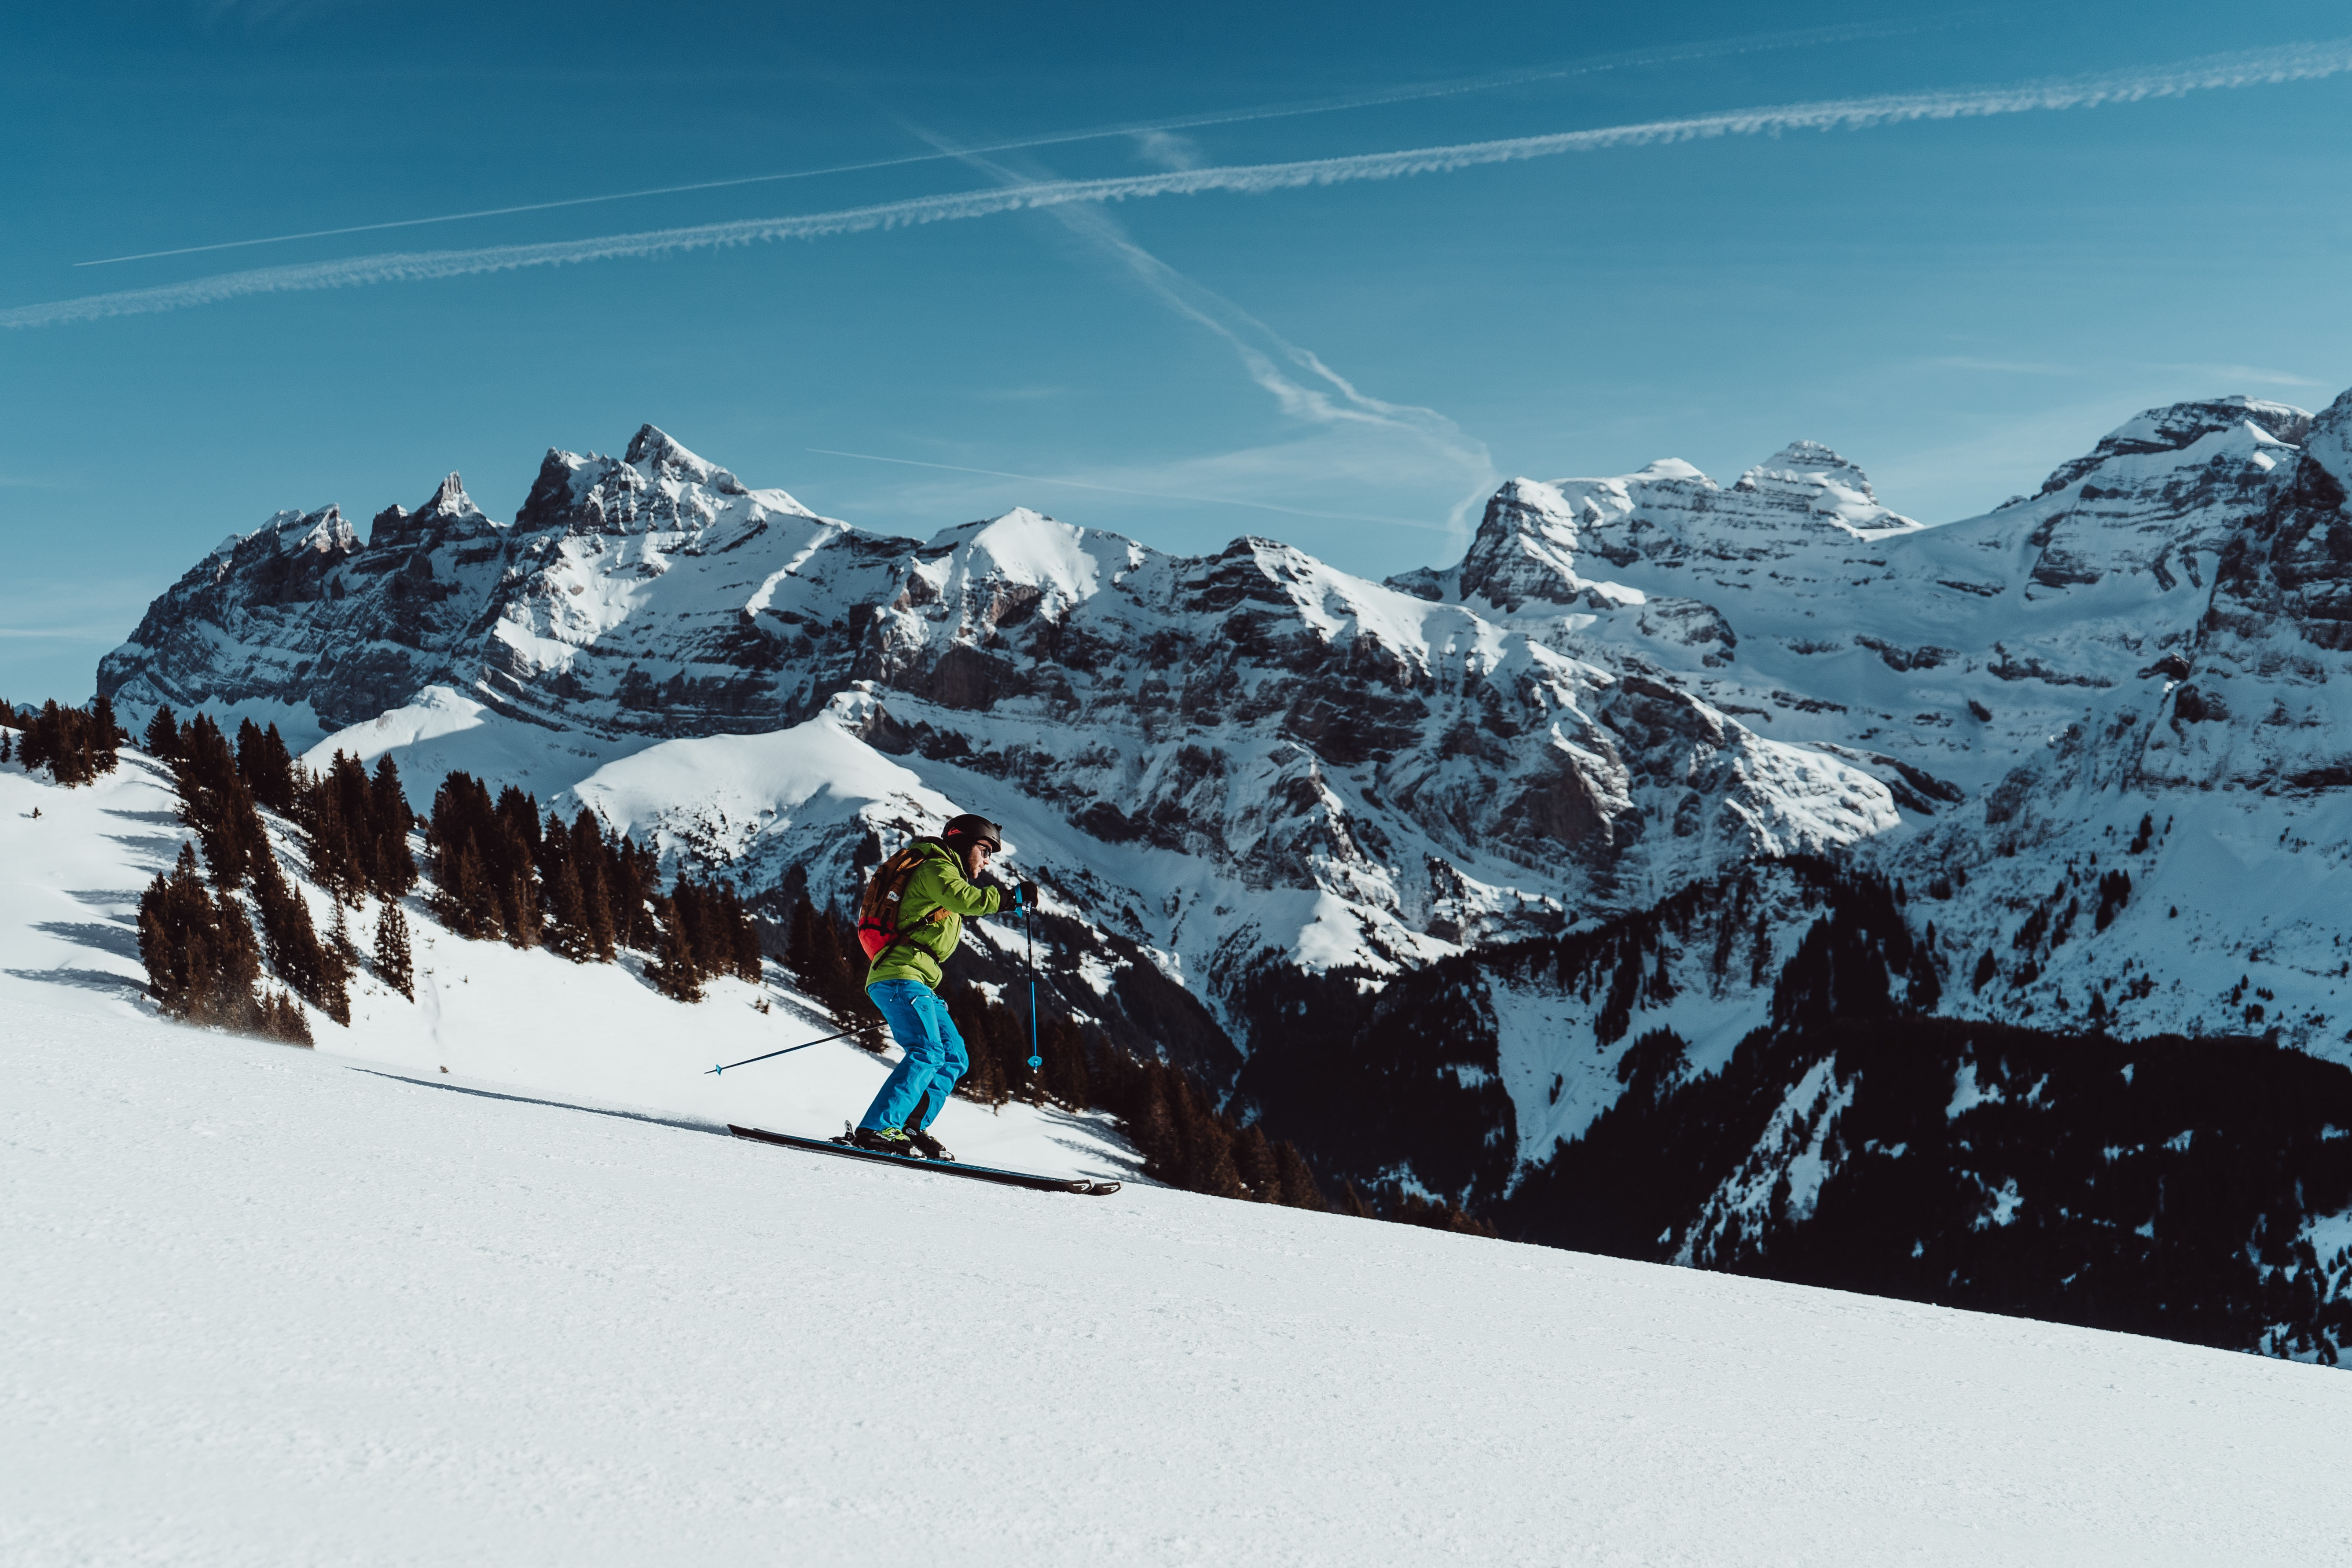 person snow skiing near snow capped mountain